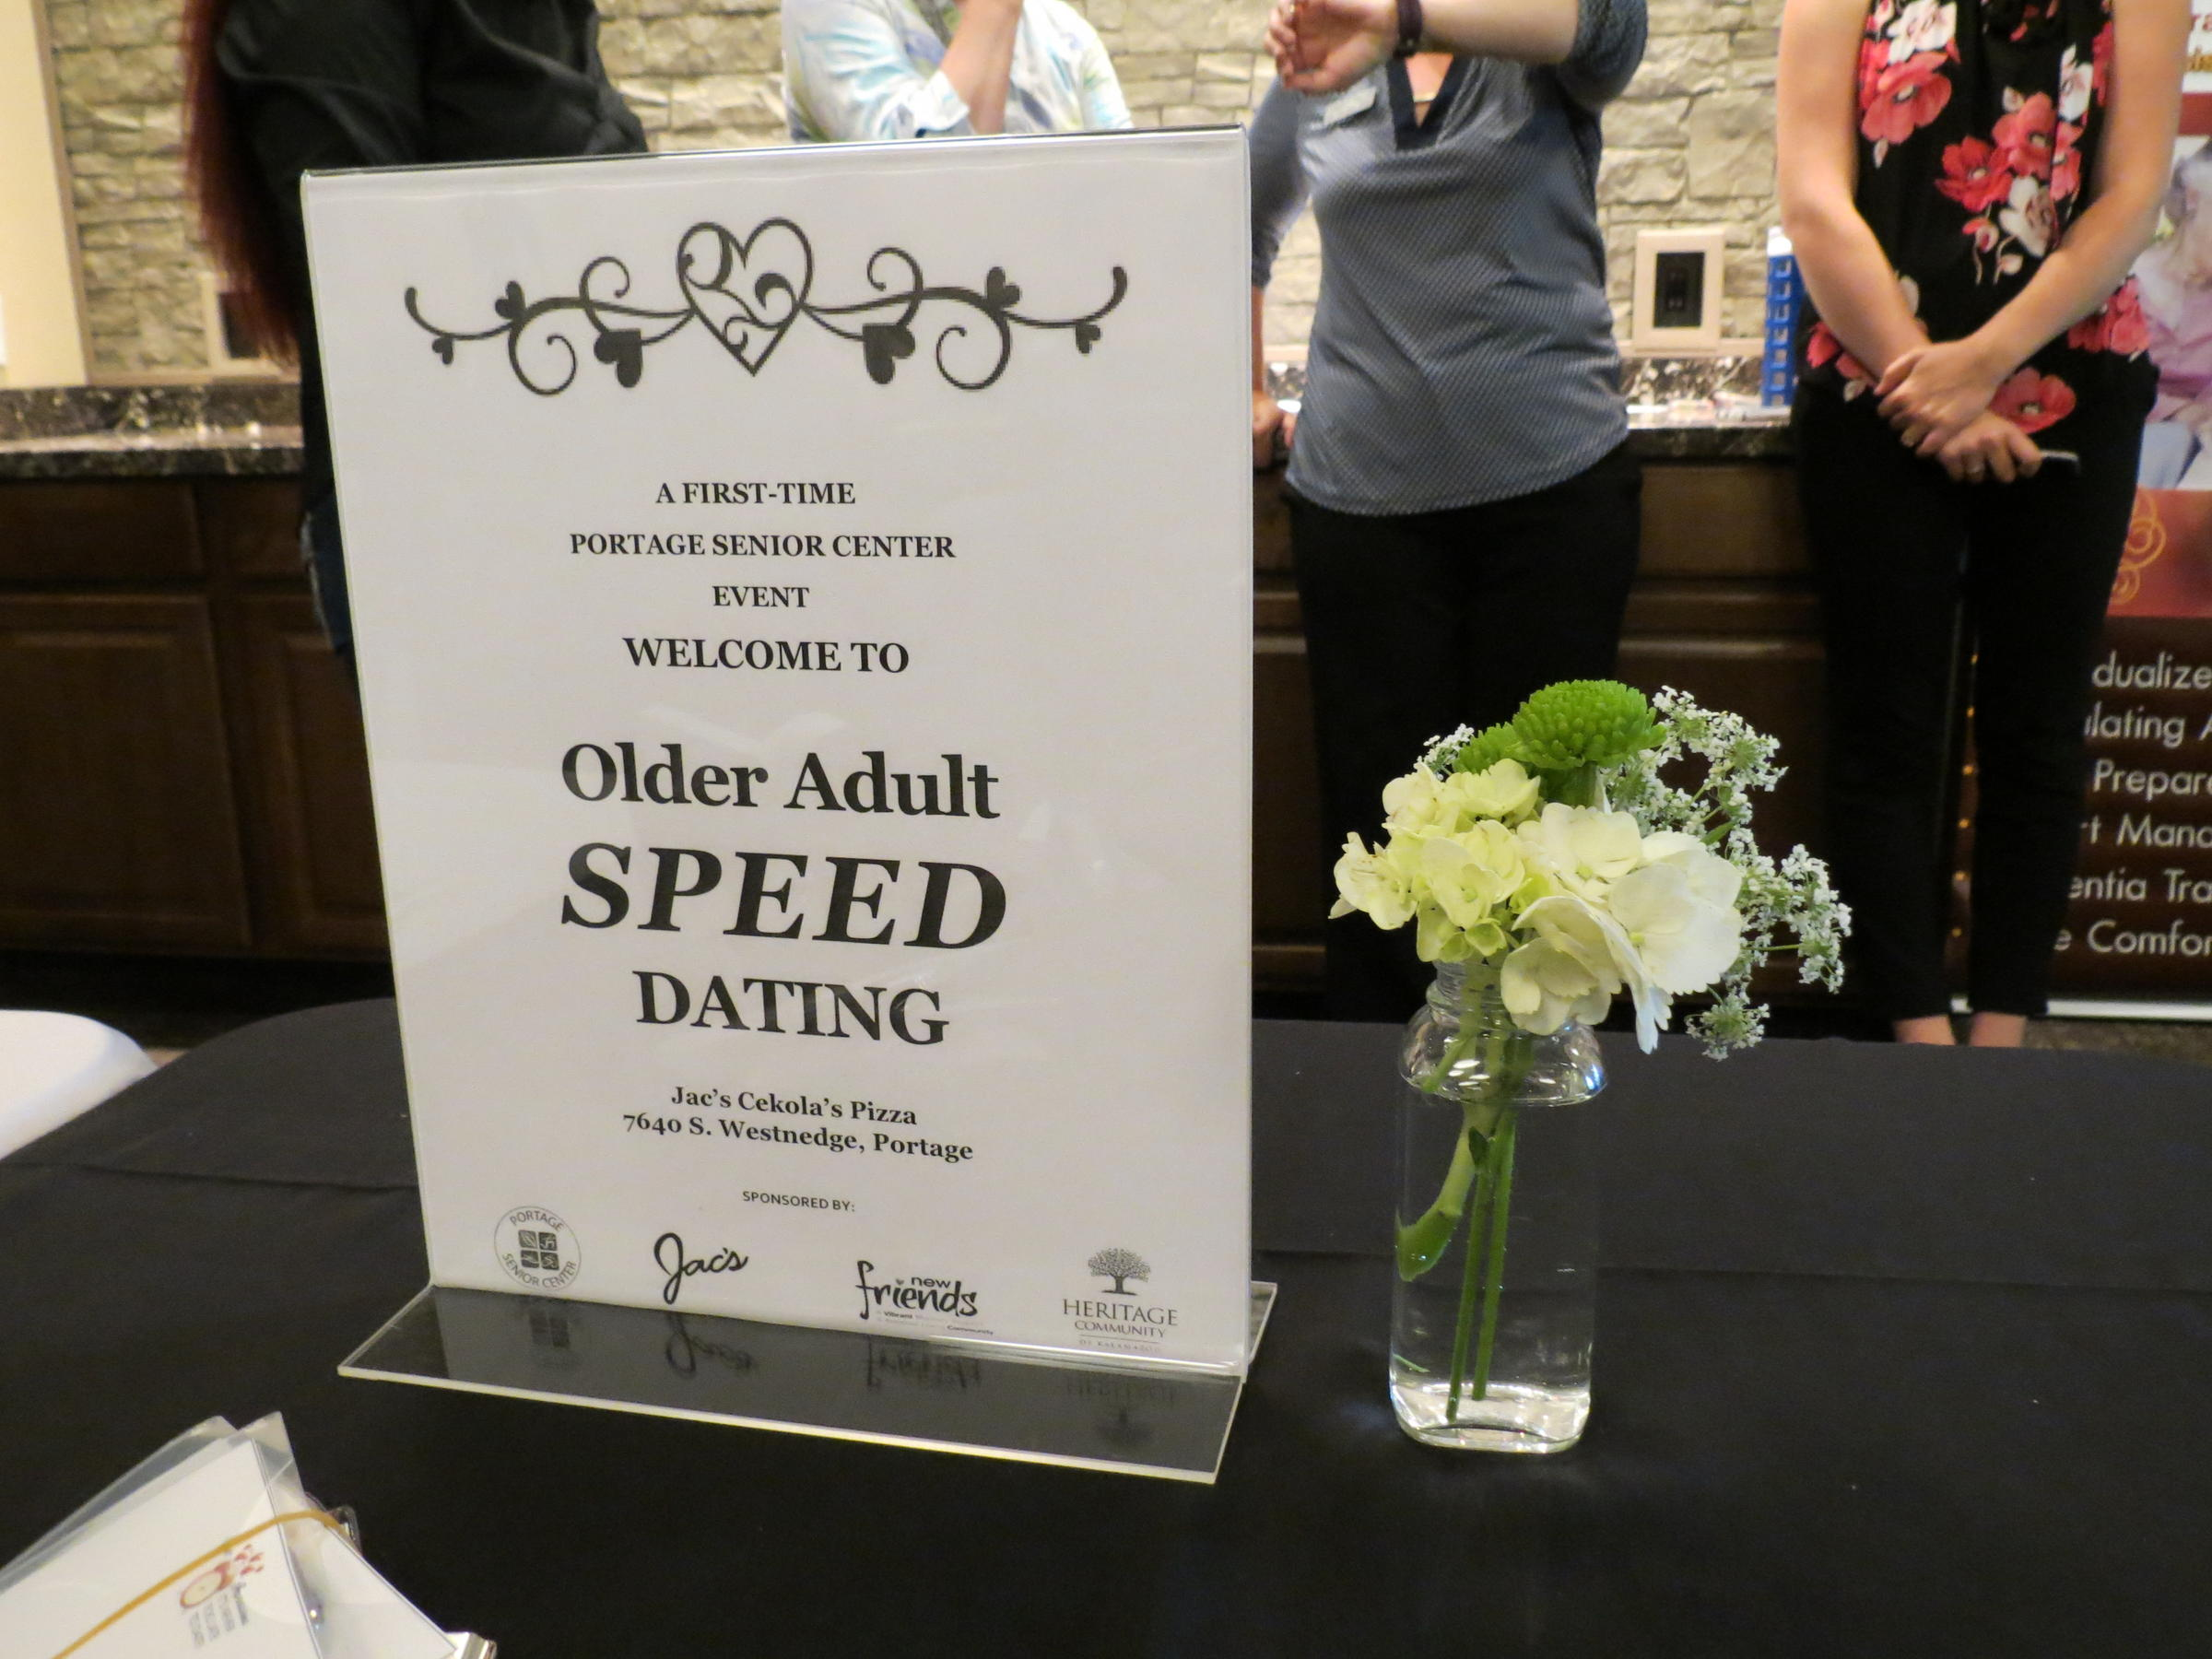 Speed dating for over 50s in newcastle